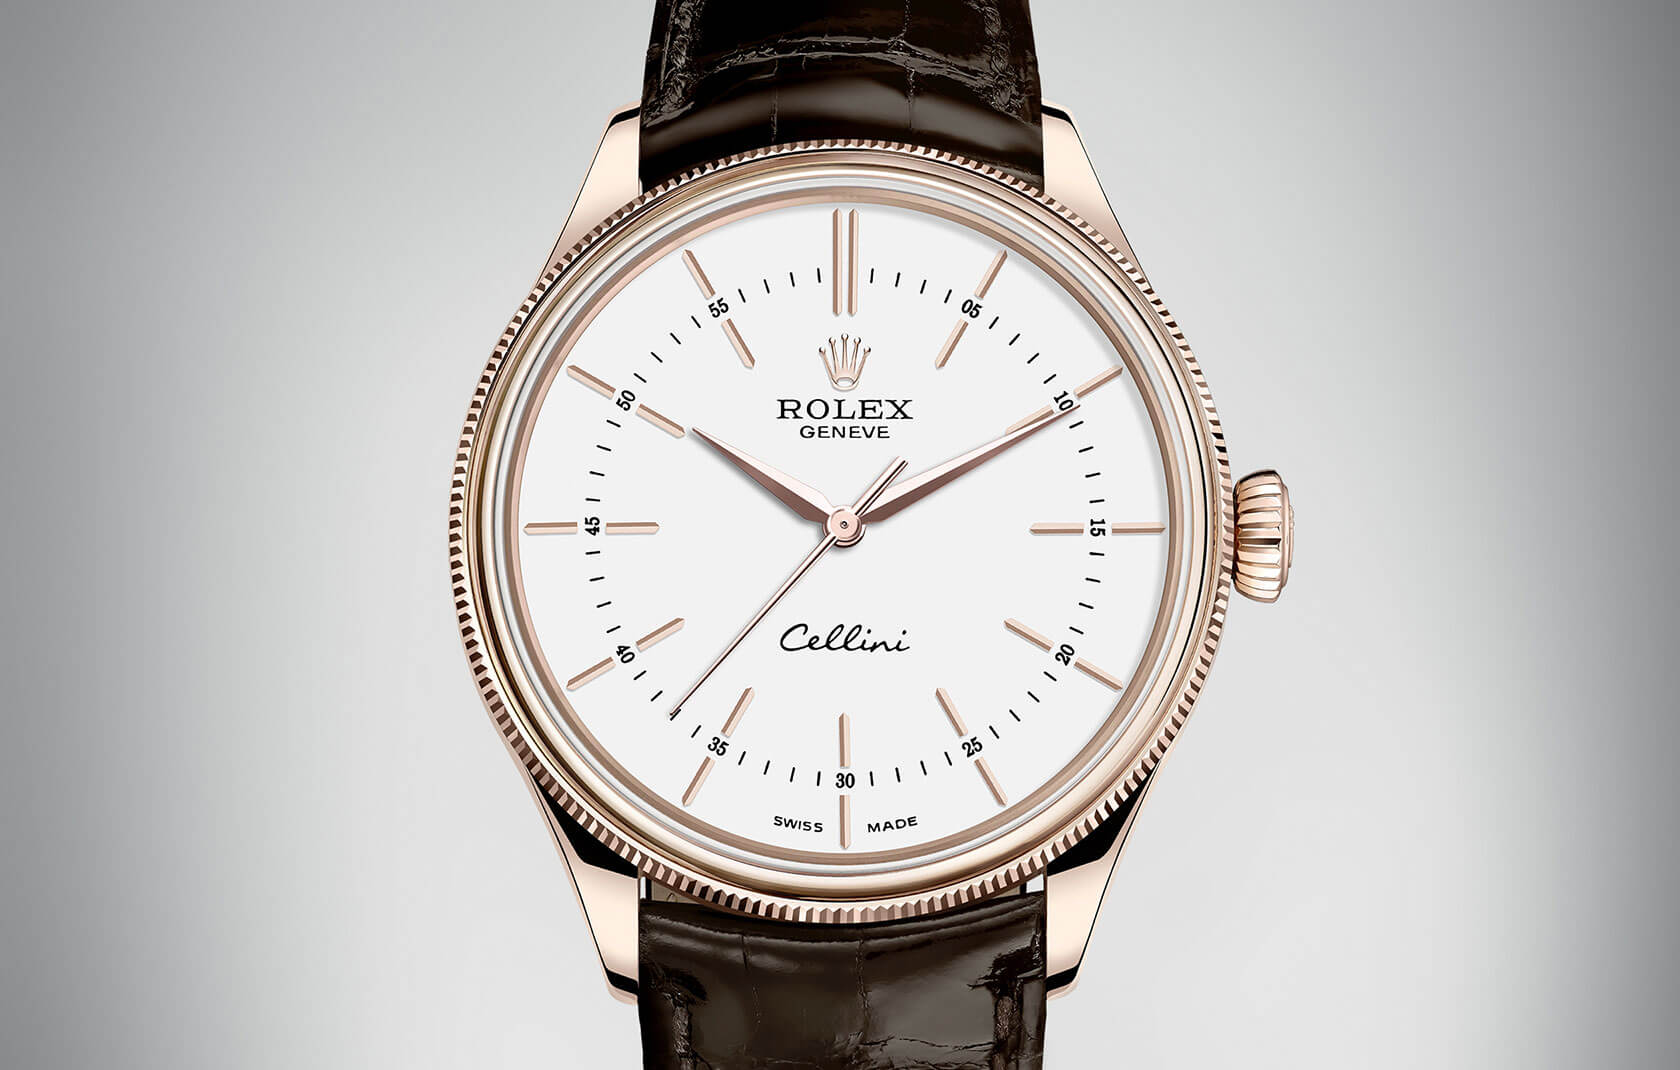 Tobacco Leather Strap Rolex Cellini Time Copy Watches